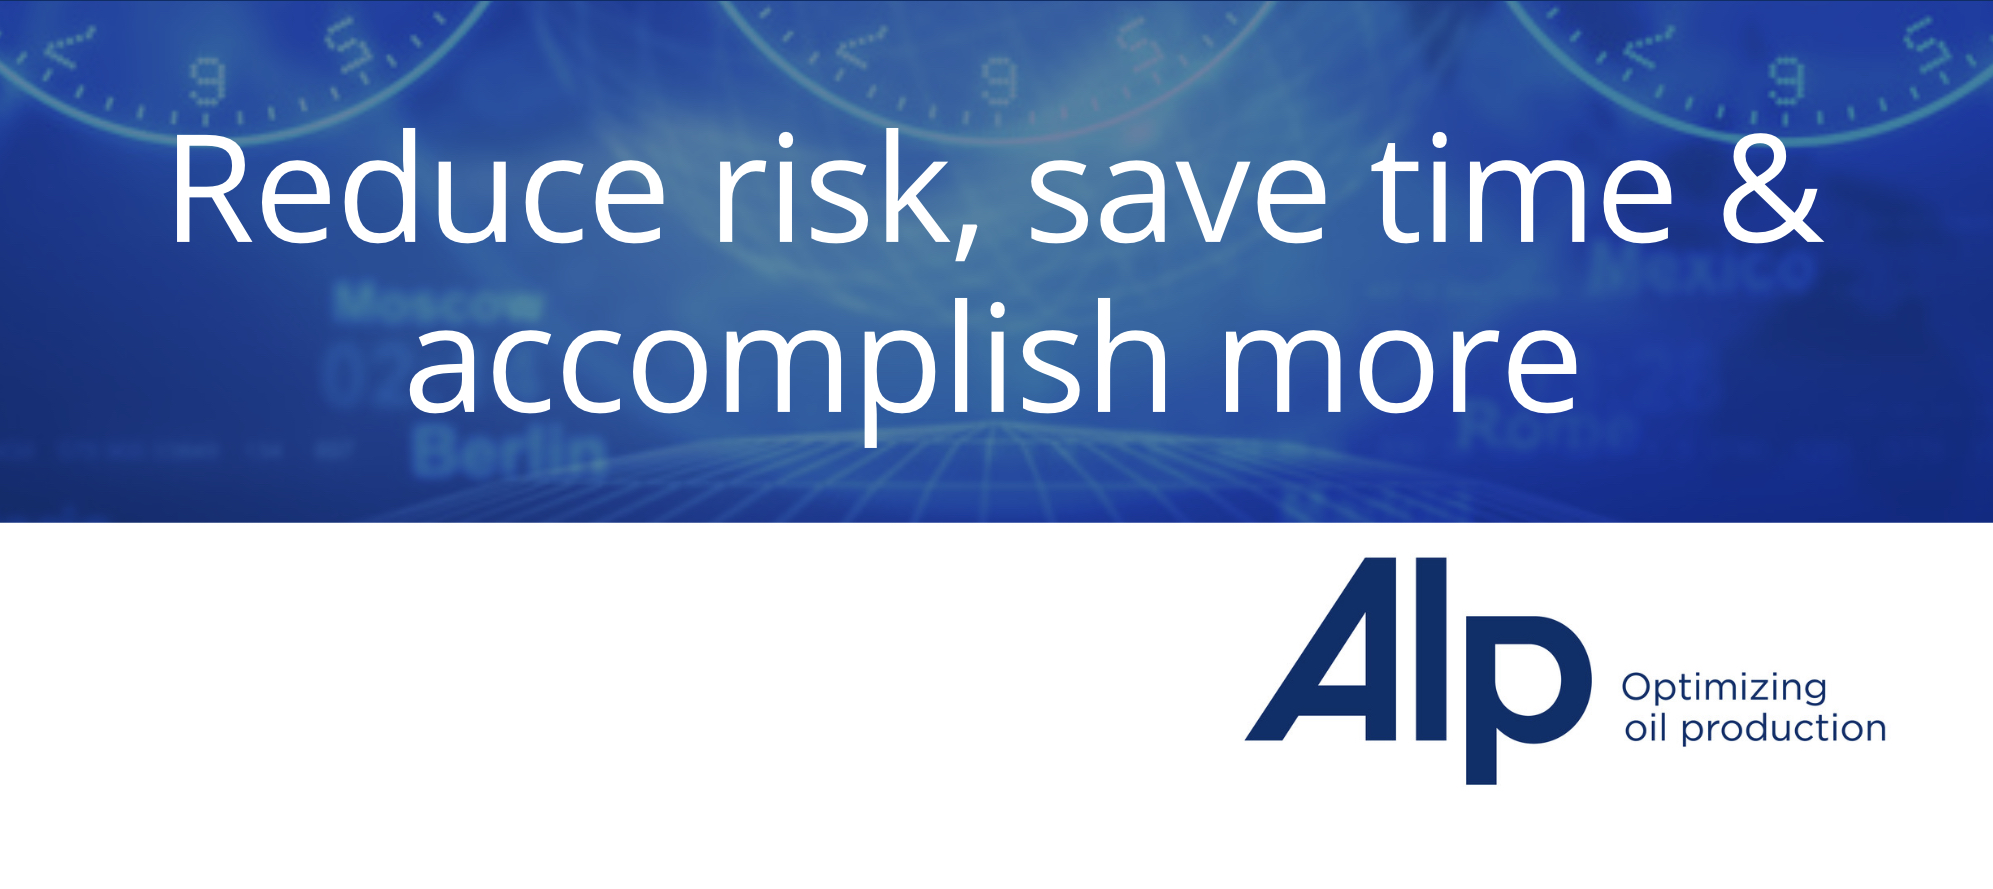 Reduce risk, save time & accomplish more